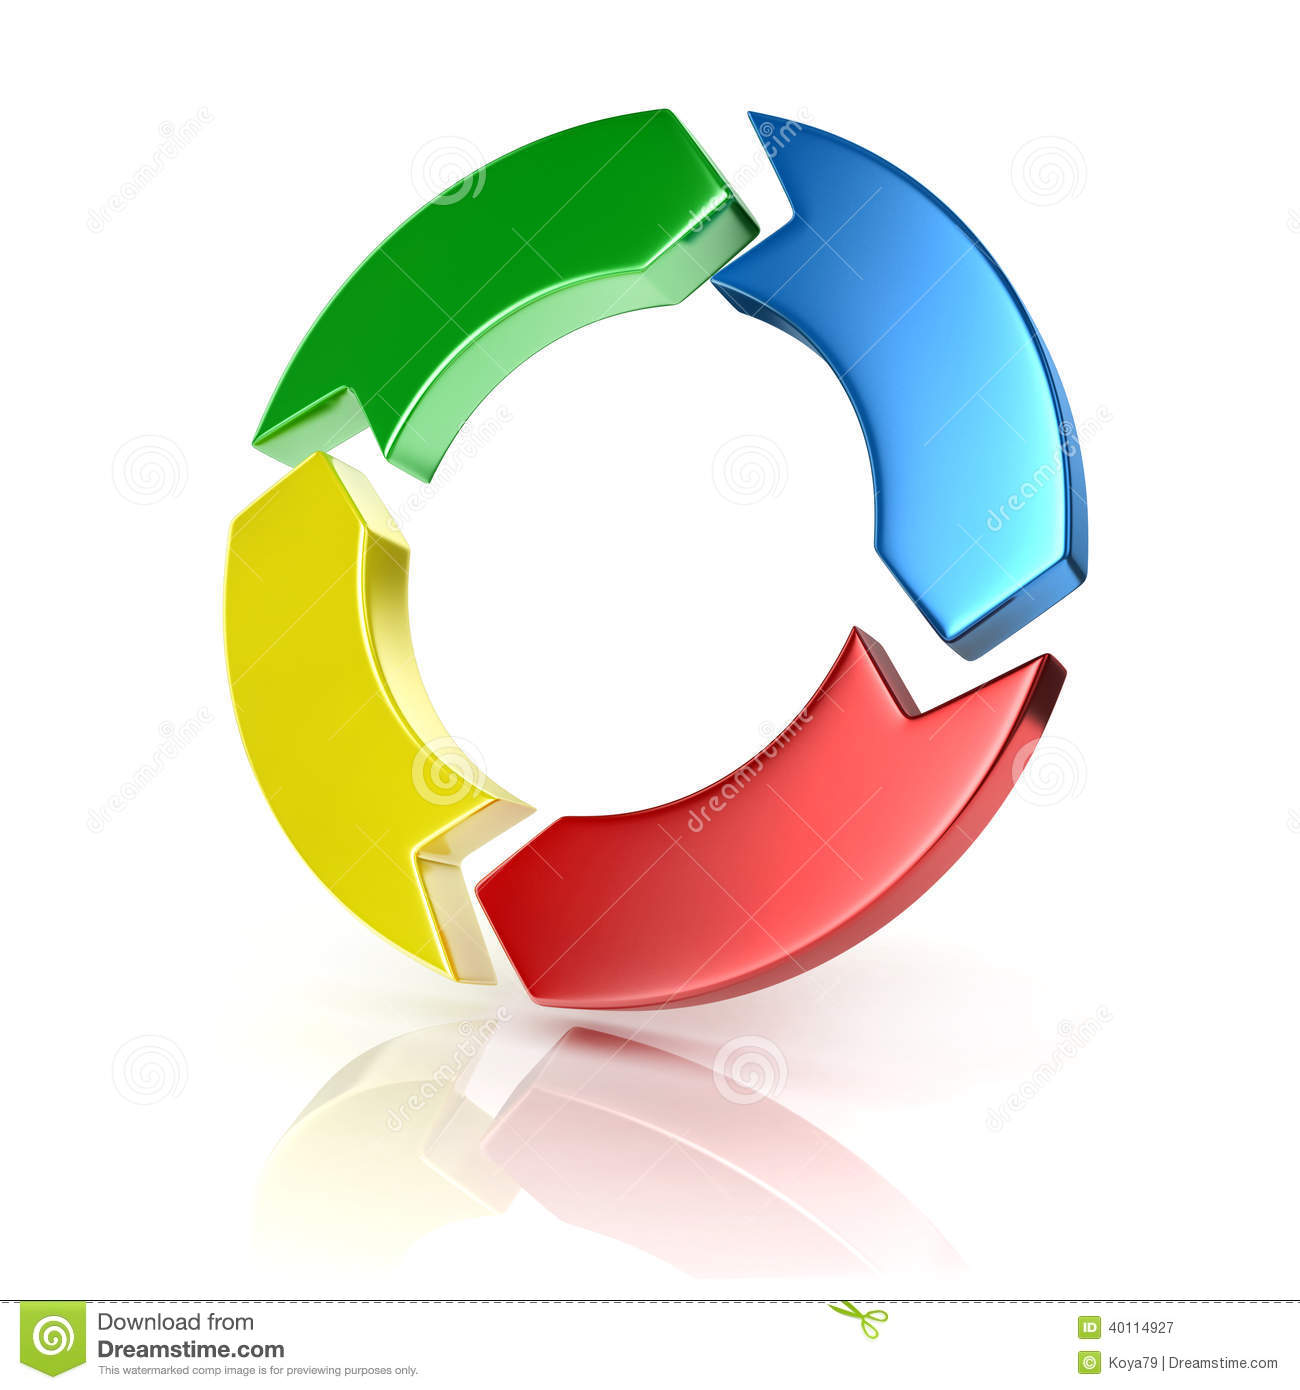 Process cycling arrow by arrow royalty free stock images image - Colorful Arrows Forming Circle Cycle 3d Concept Royalty Free Stock Photography